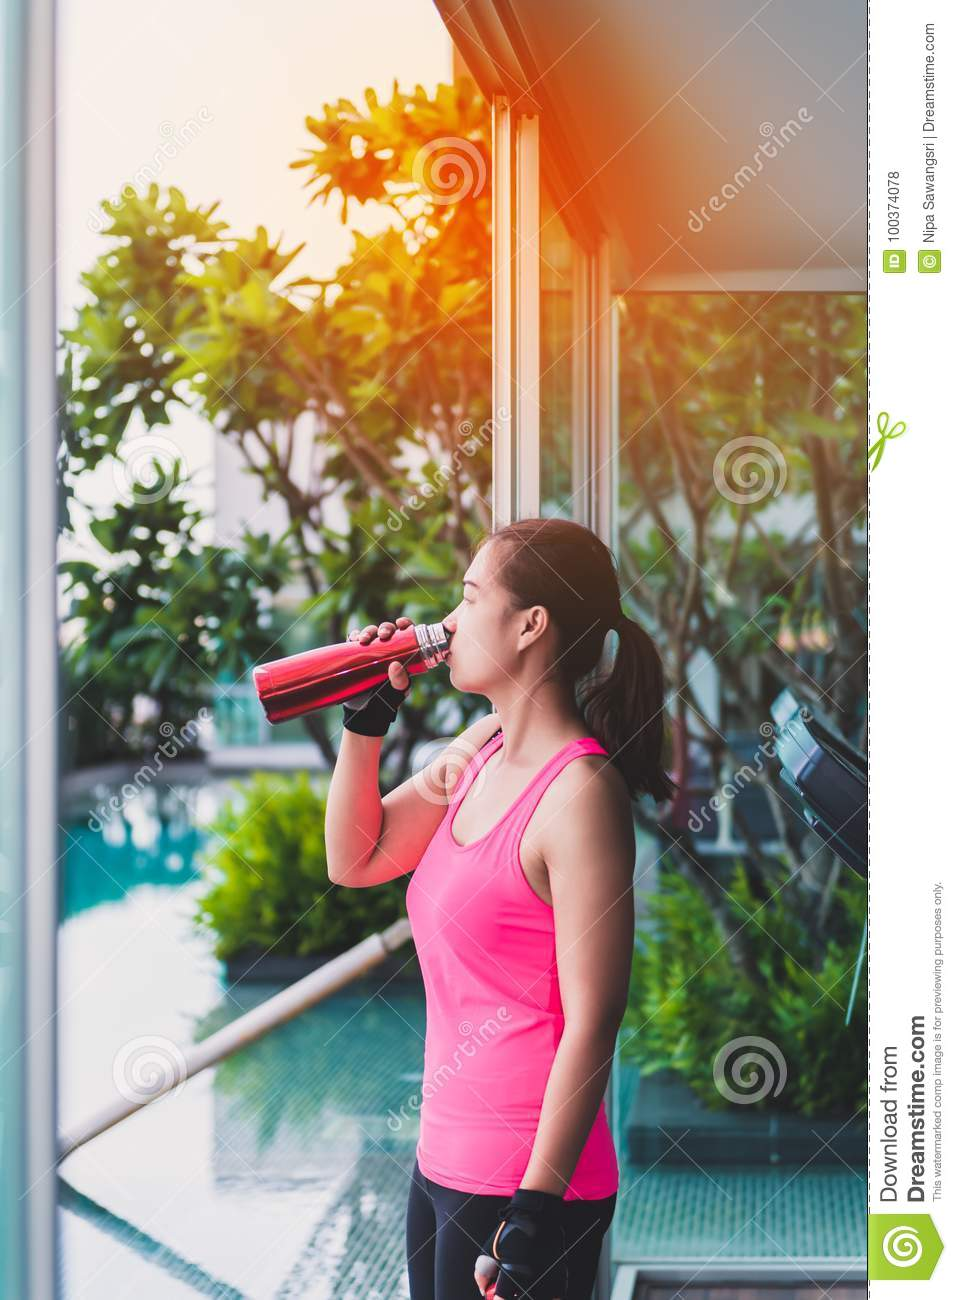 Gym woman working out drinking water at fitness center